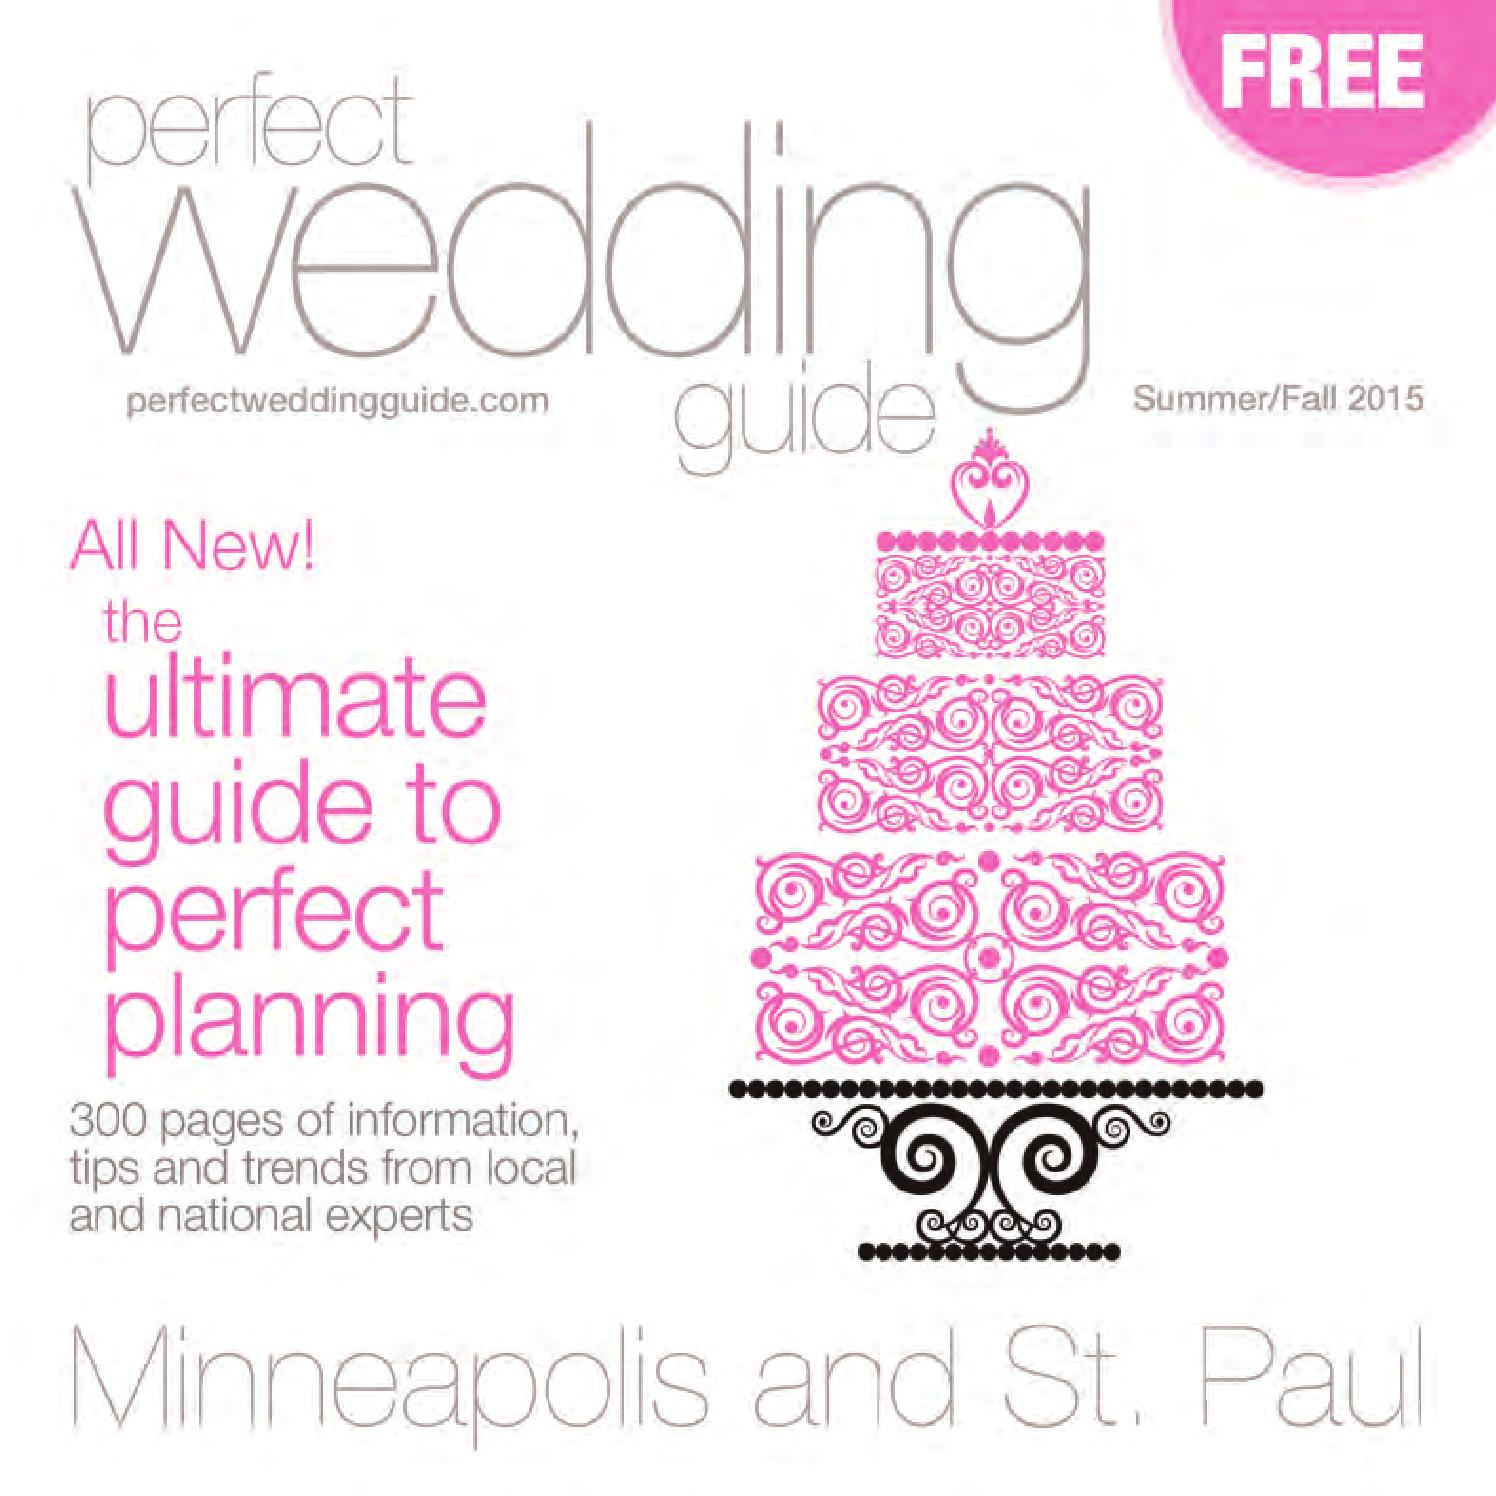 Perfect wedding guide twin cities summerfall 2015 by rick caldwell perfect wedding guide twin cities summerfall 2015 by rick caldwell issuu fandeluxe Gallery